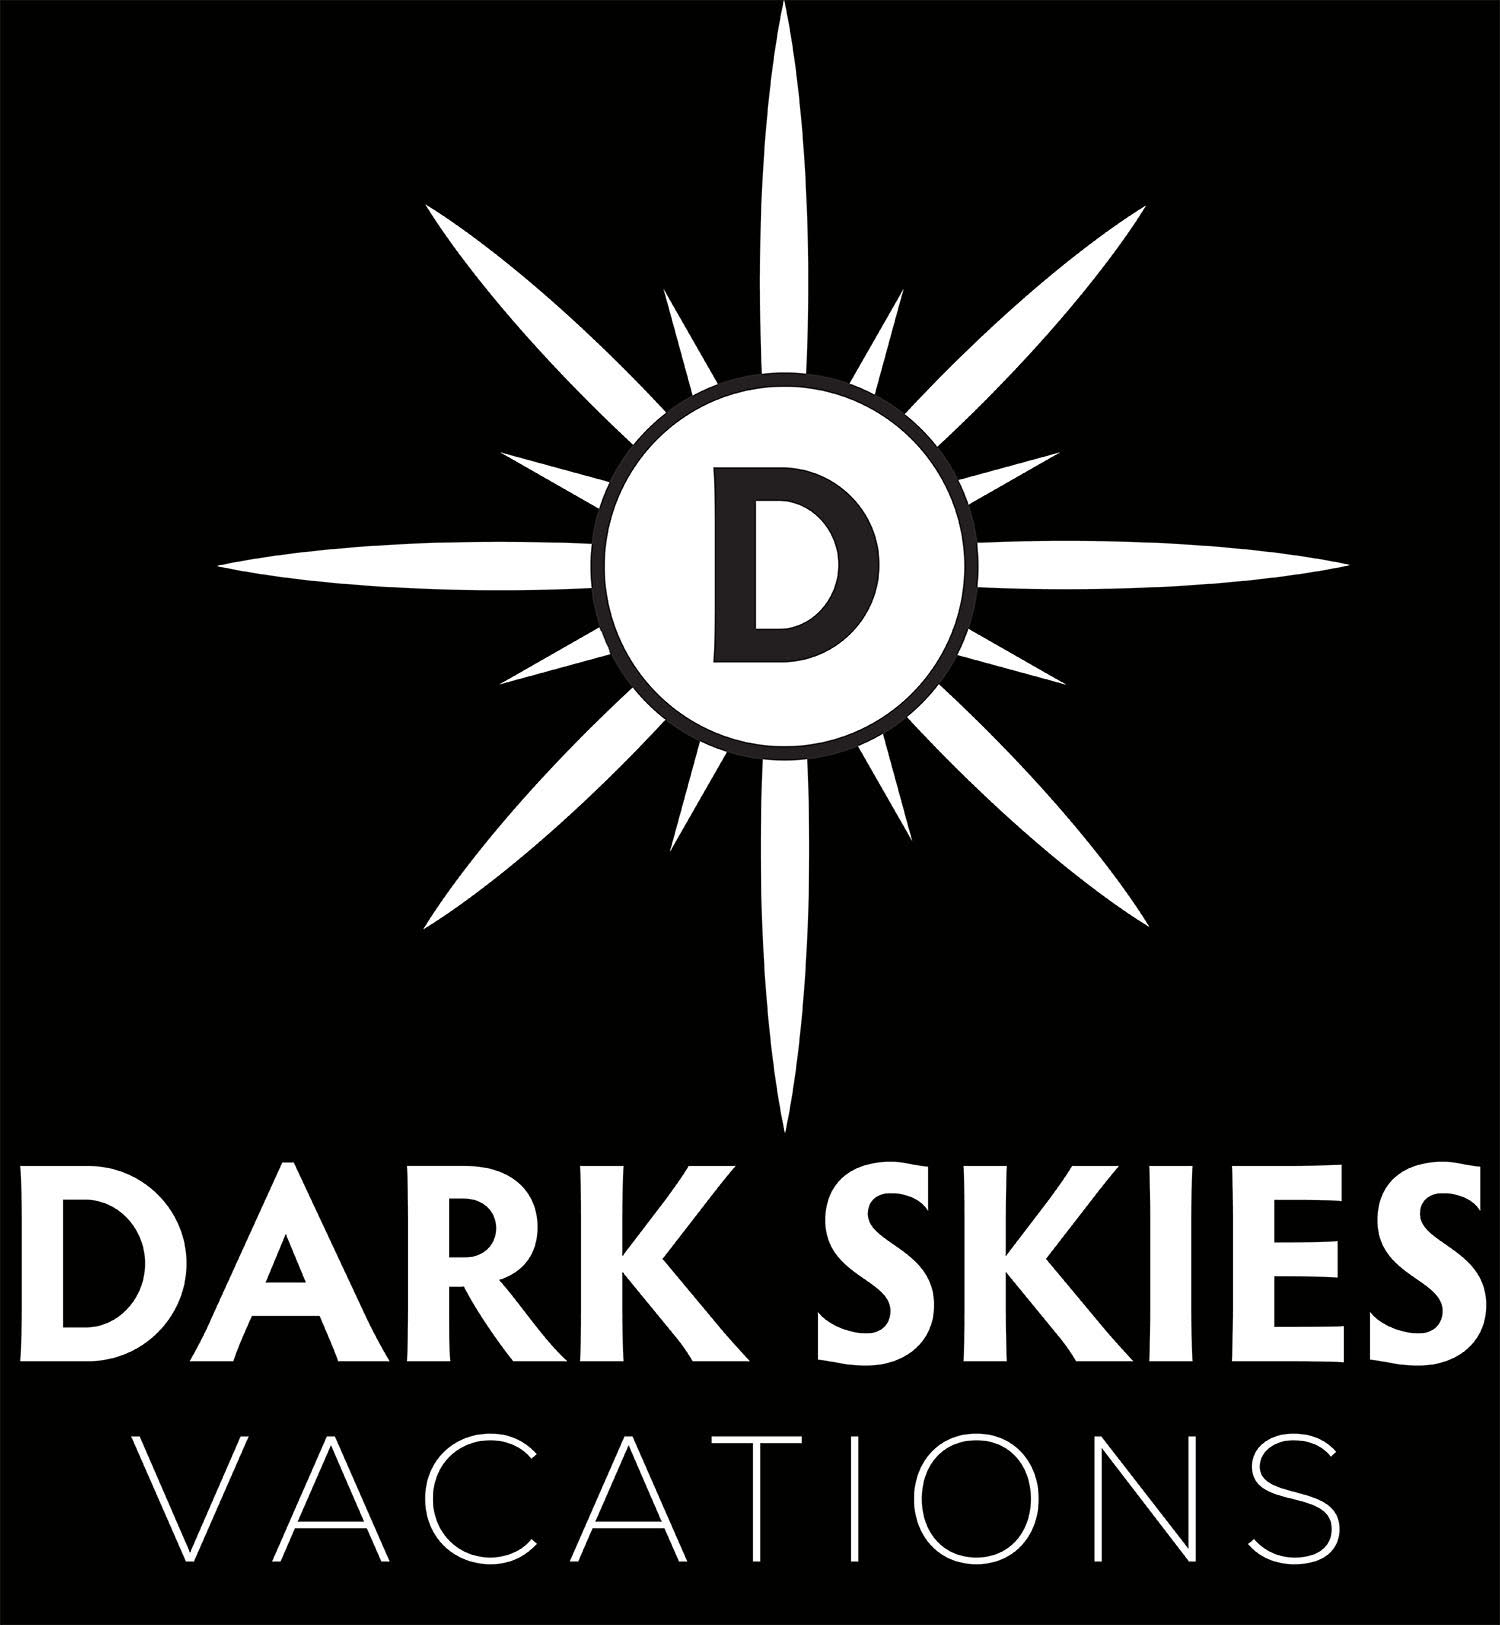 Dark Skies Vacations